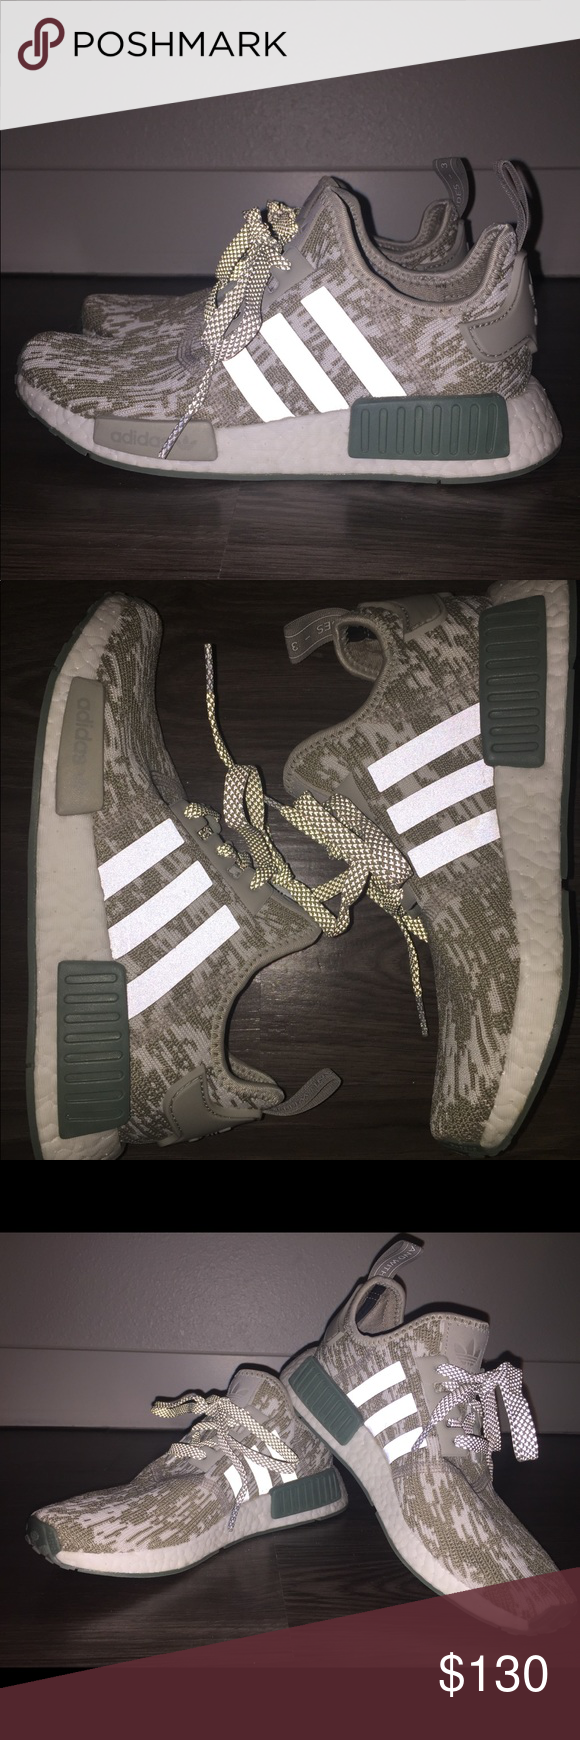 39f036dd6162c Adidas Originals NMD R1 Sesame Trace Green White Fit size 5.5 in Men s and  7.5 in Women s. Worn once. Brand new with box. Perfect condition adidas  Shoes ...